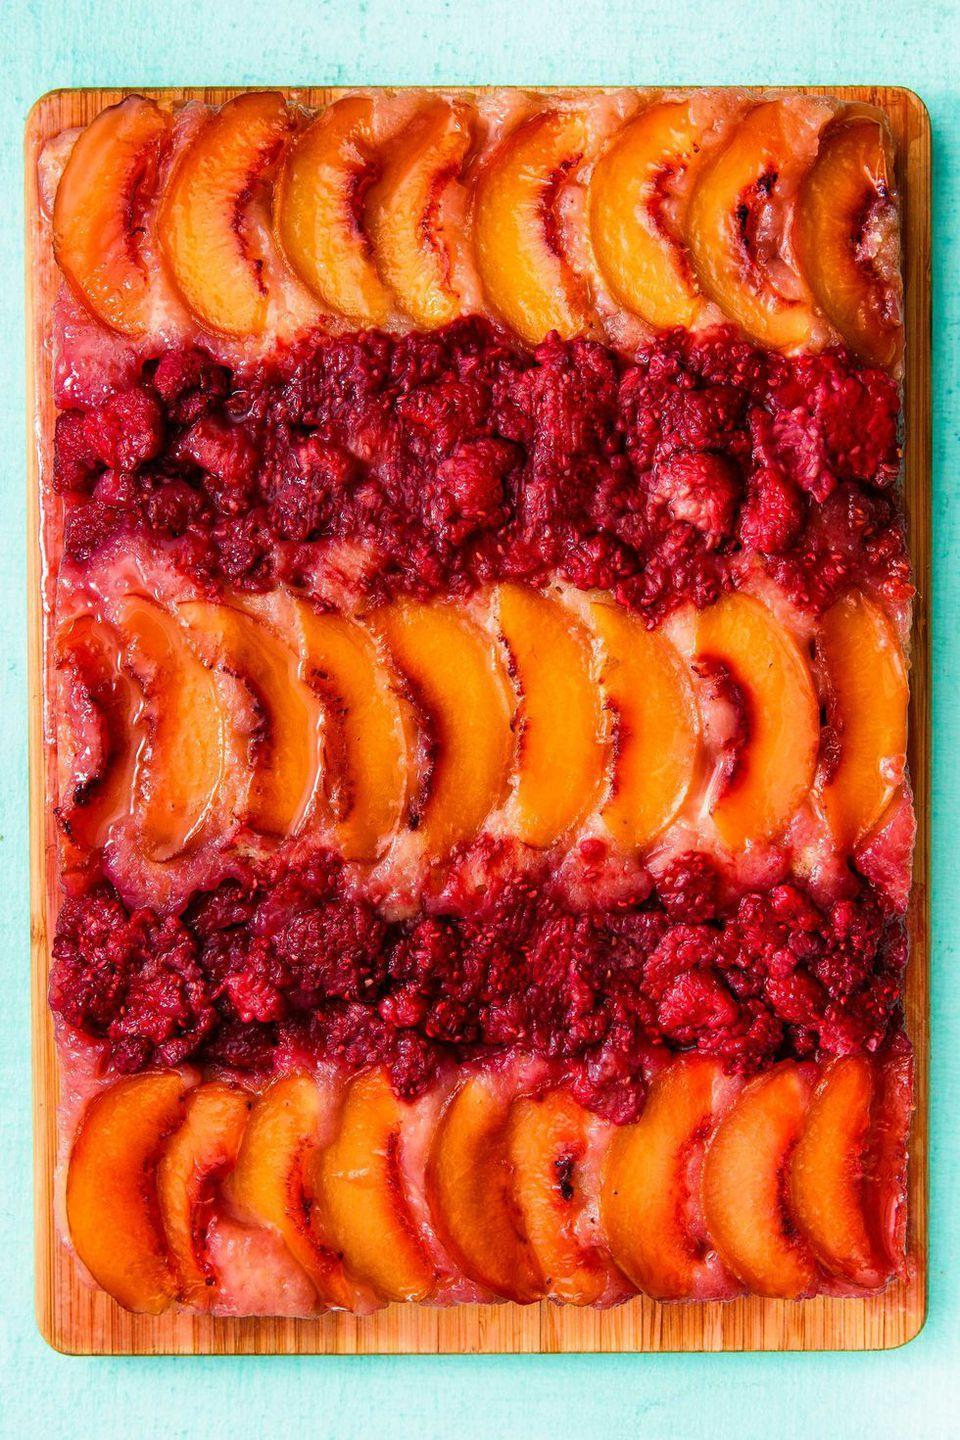 """<p>Peachy keen.</p><p>Get the recipe from <a href=""""https://www.delish.com/cooking/recipe-ideas/a23281537/raspberry-peach-upside-down-cake-recipe/"""" rel=""""nofollow noopener"""" target=""""_blank"""" data-ylk=""""slk:Delish"""" class=""""link rapid-noclick-resp"""">Delish</a>.</p>"""